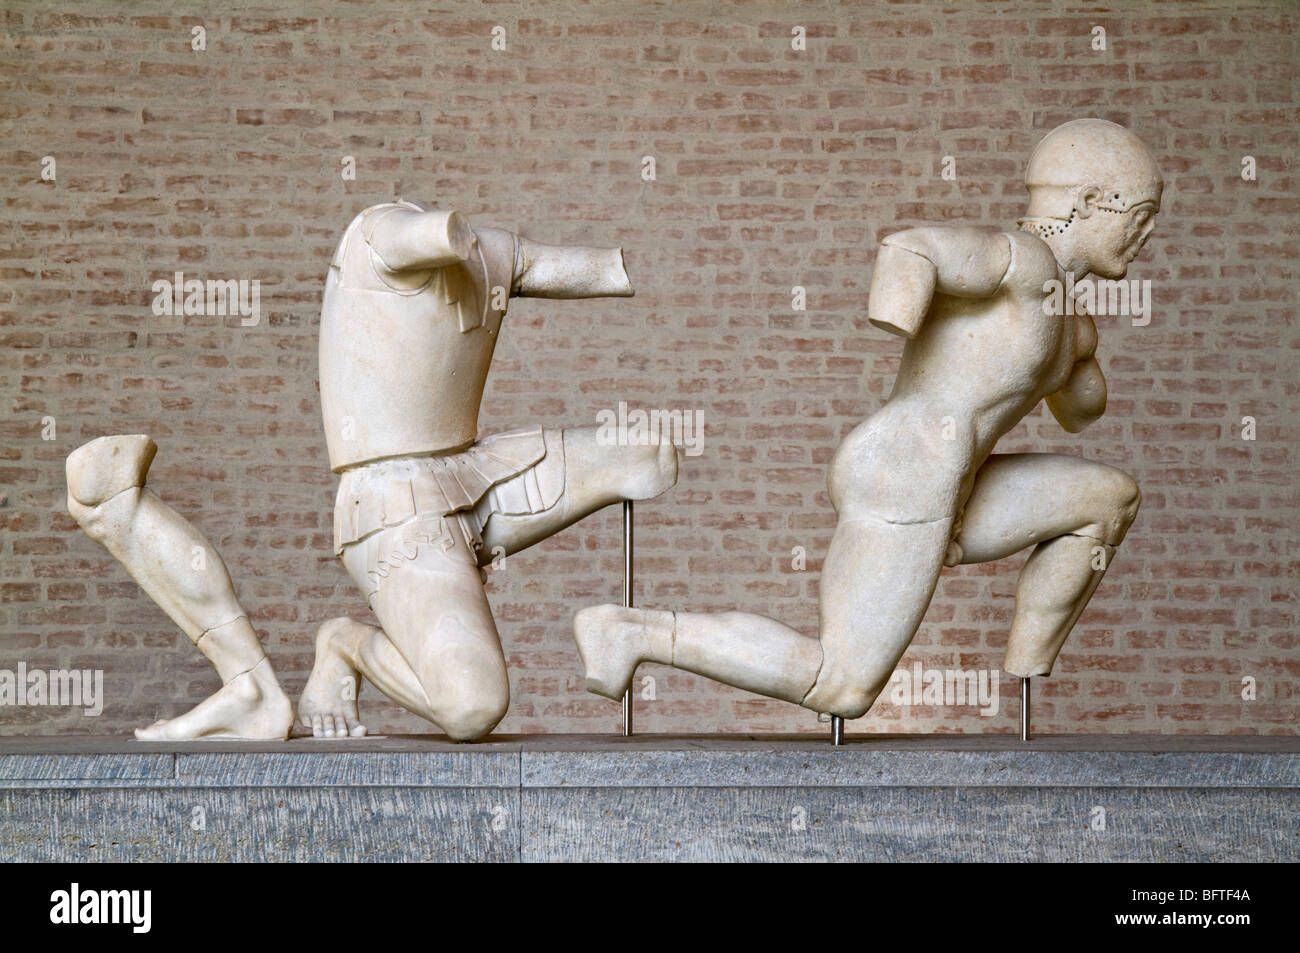 Group of warriors from the west pediment of the Temple of Aphaia at Aegina, ca. 490 BC. - Stock Image